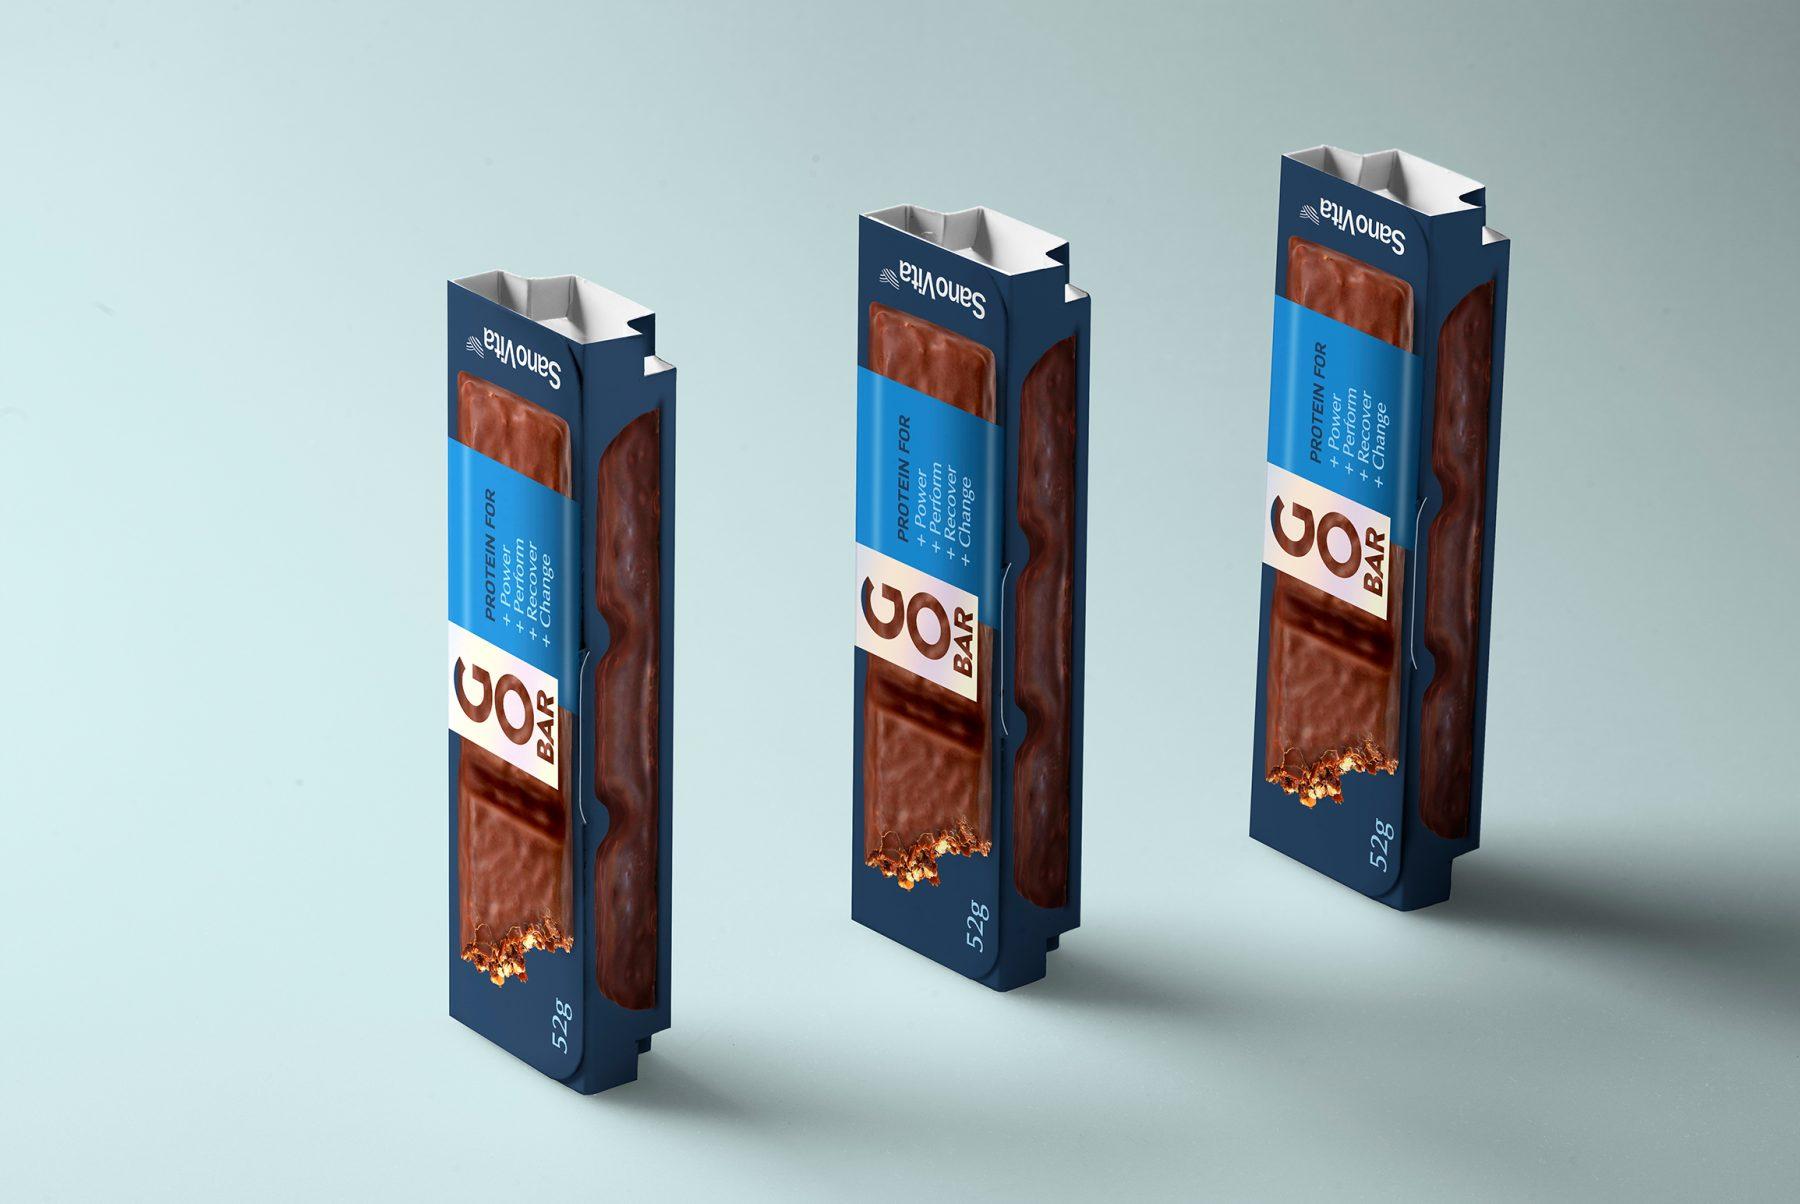 Go Bar protein bar packaging design